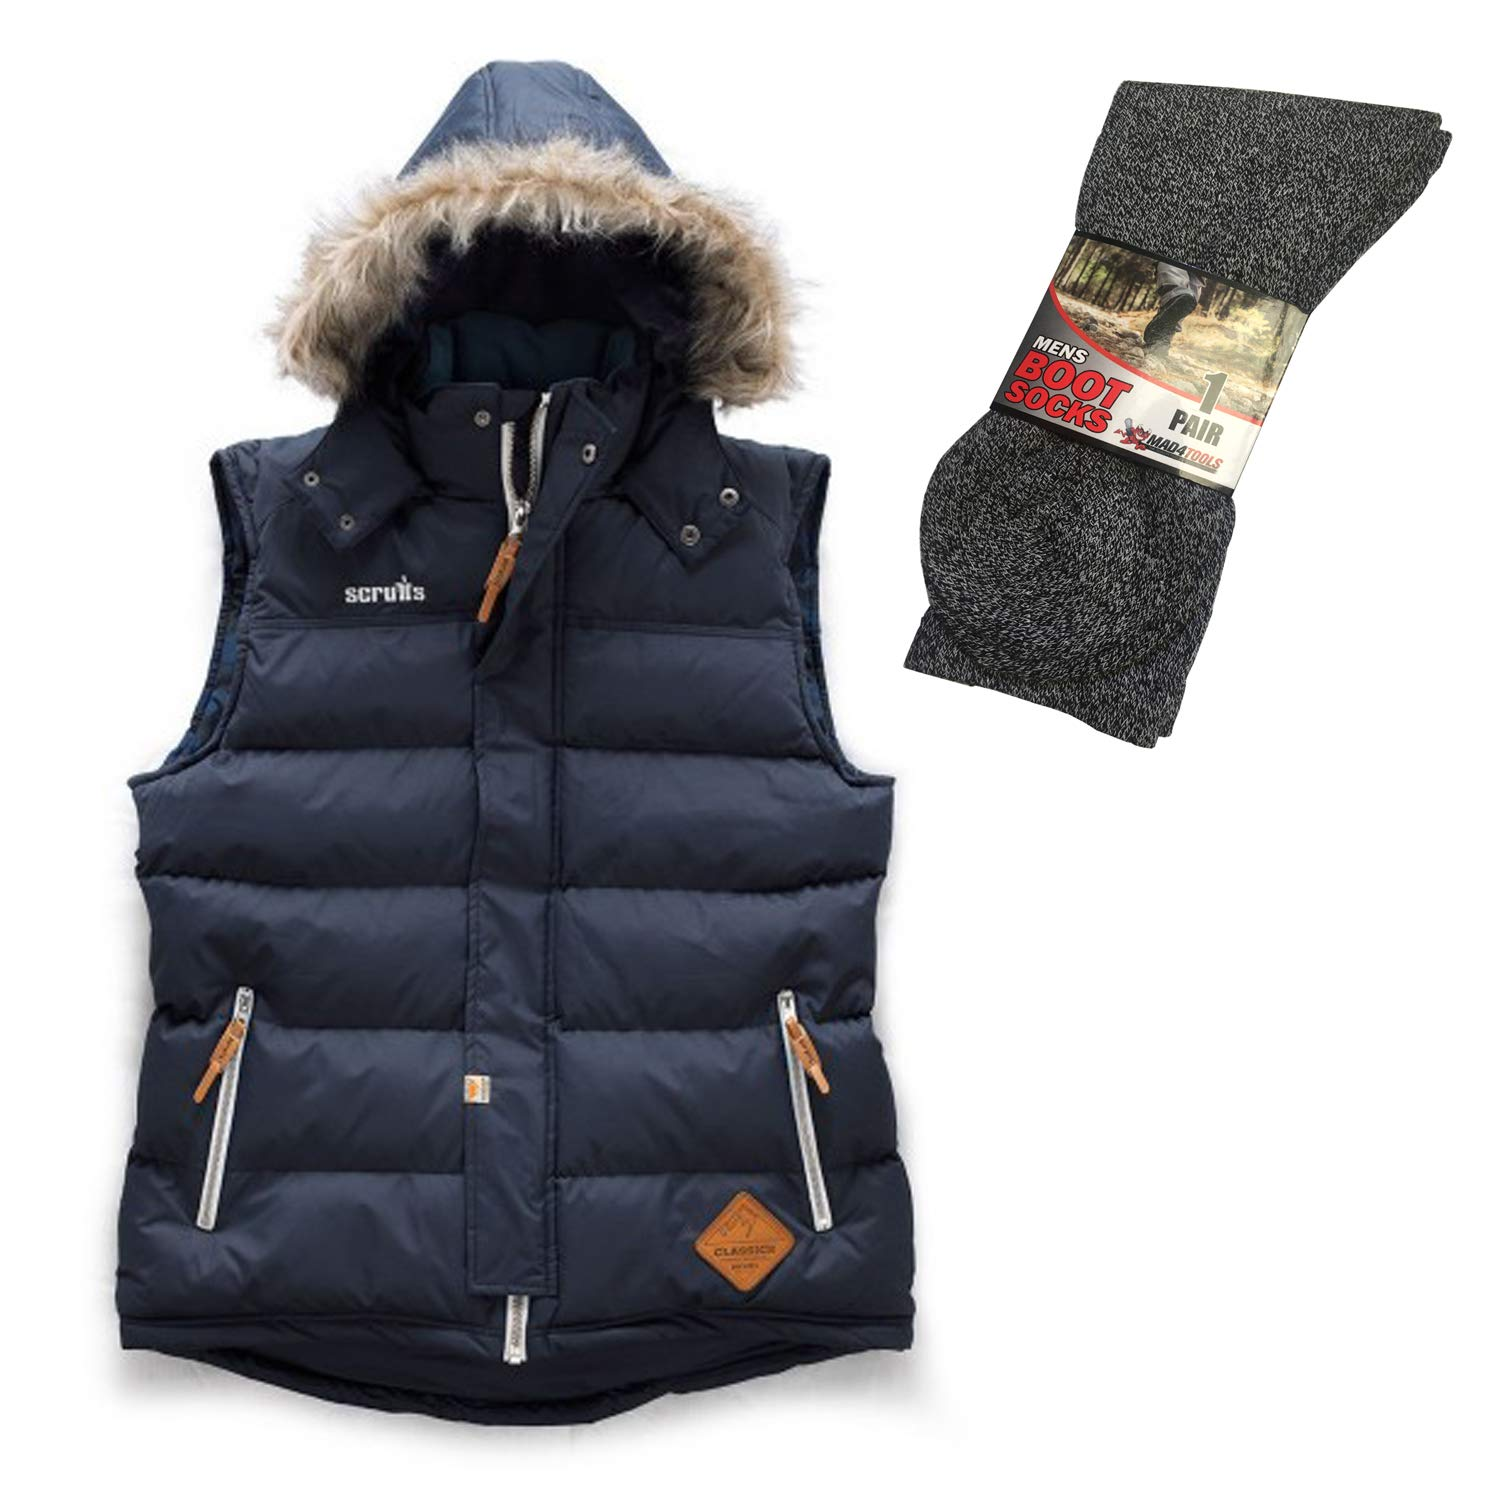 mad4tools Scruffs Classic Vintage Gilet with Grey Boot Socks